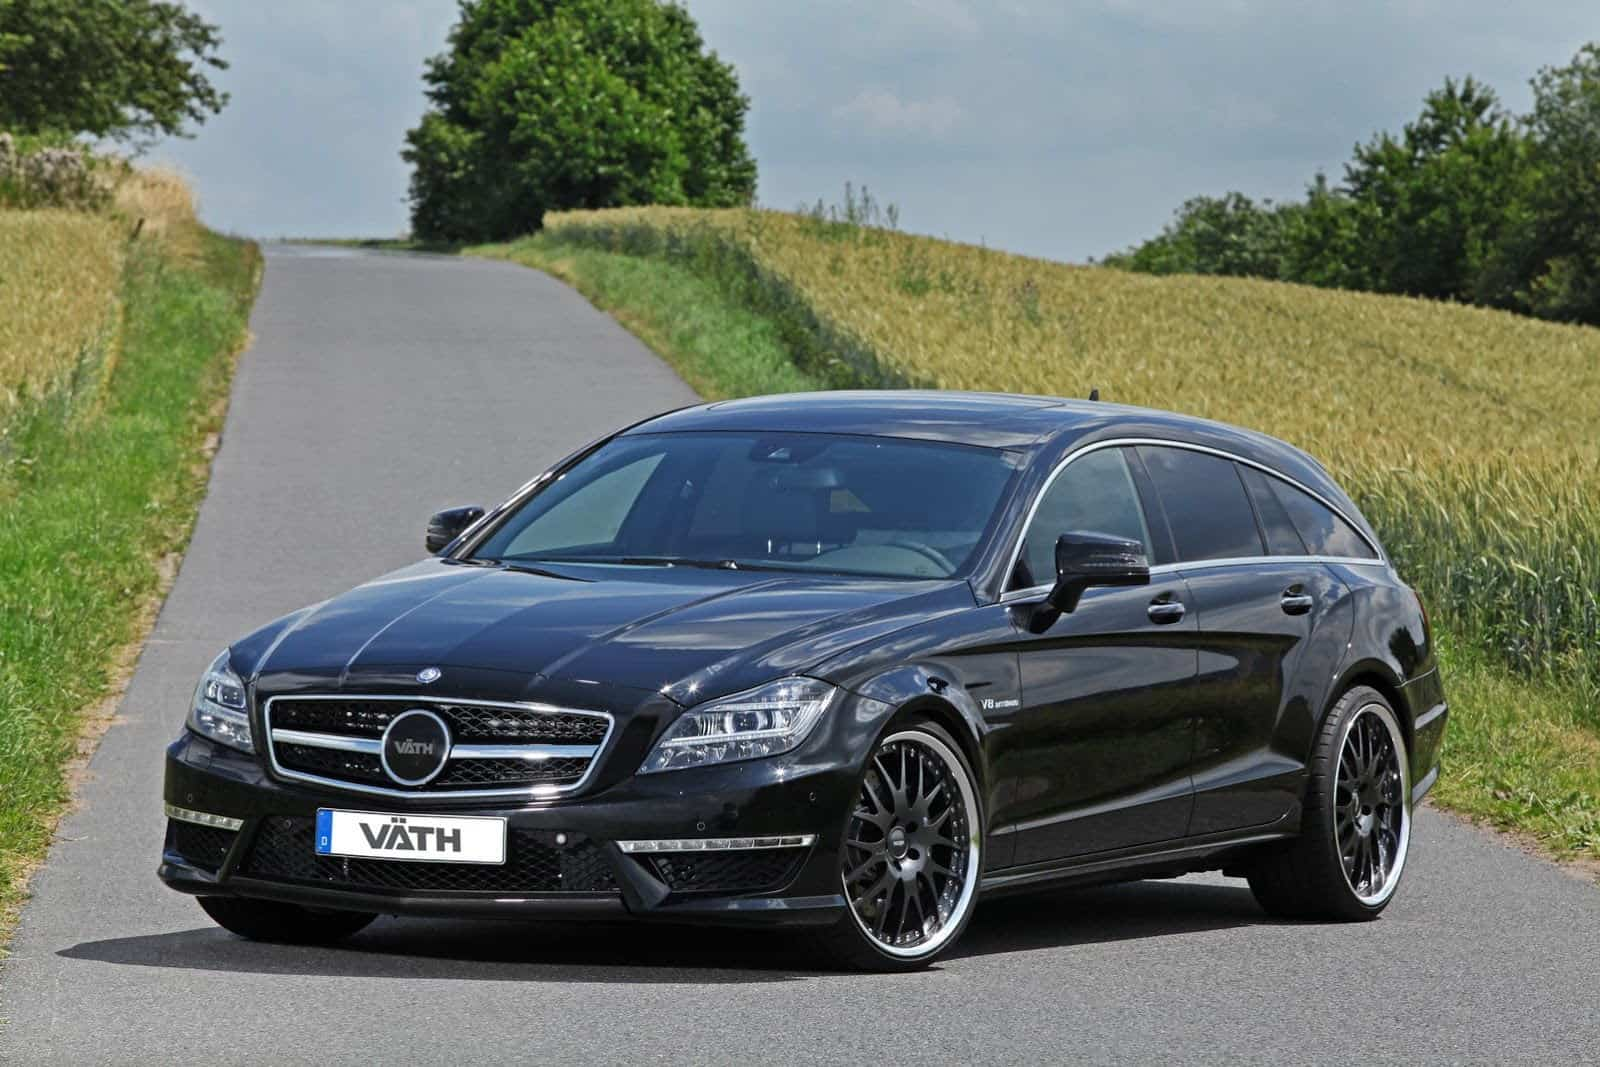 Benz CLS by Vath